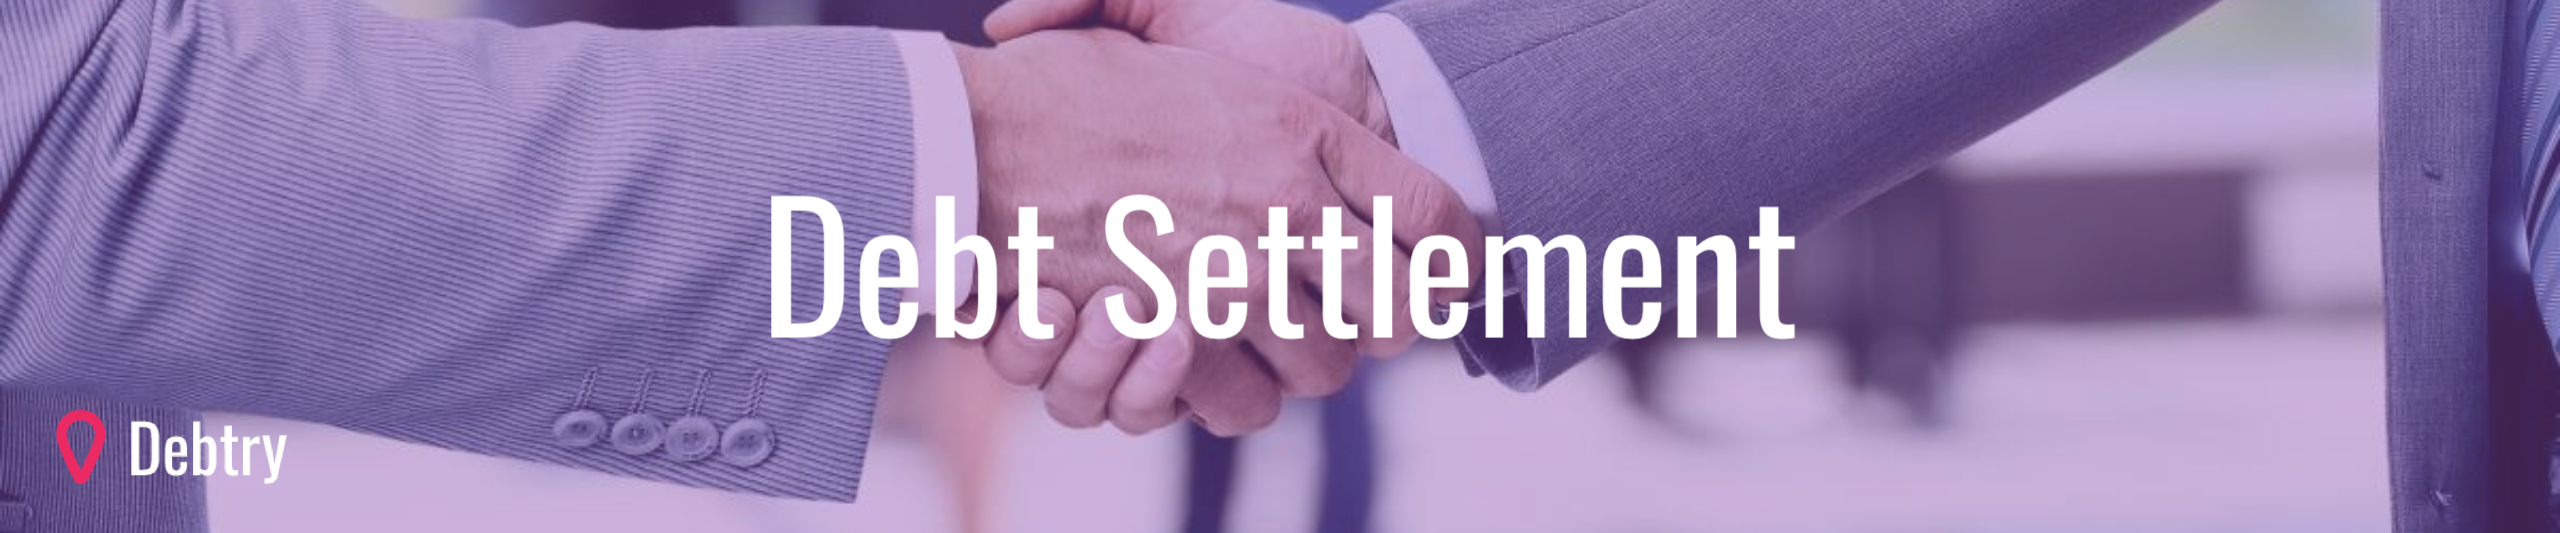 Debt Settlement on Debtry